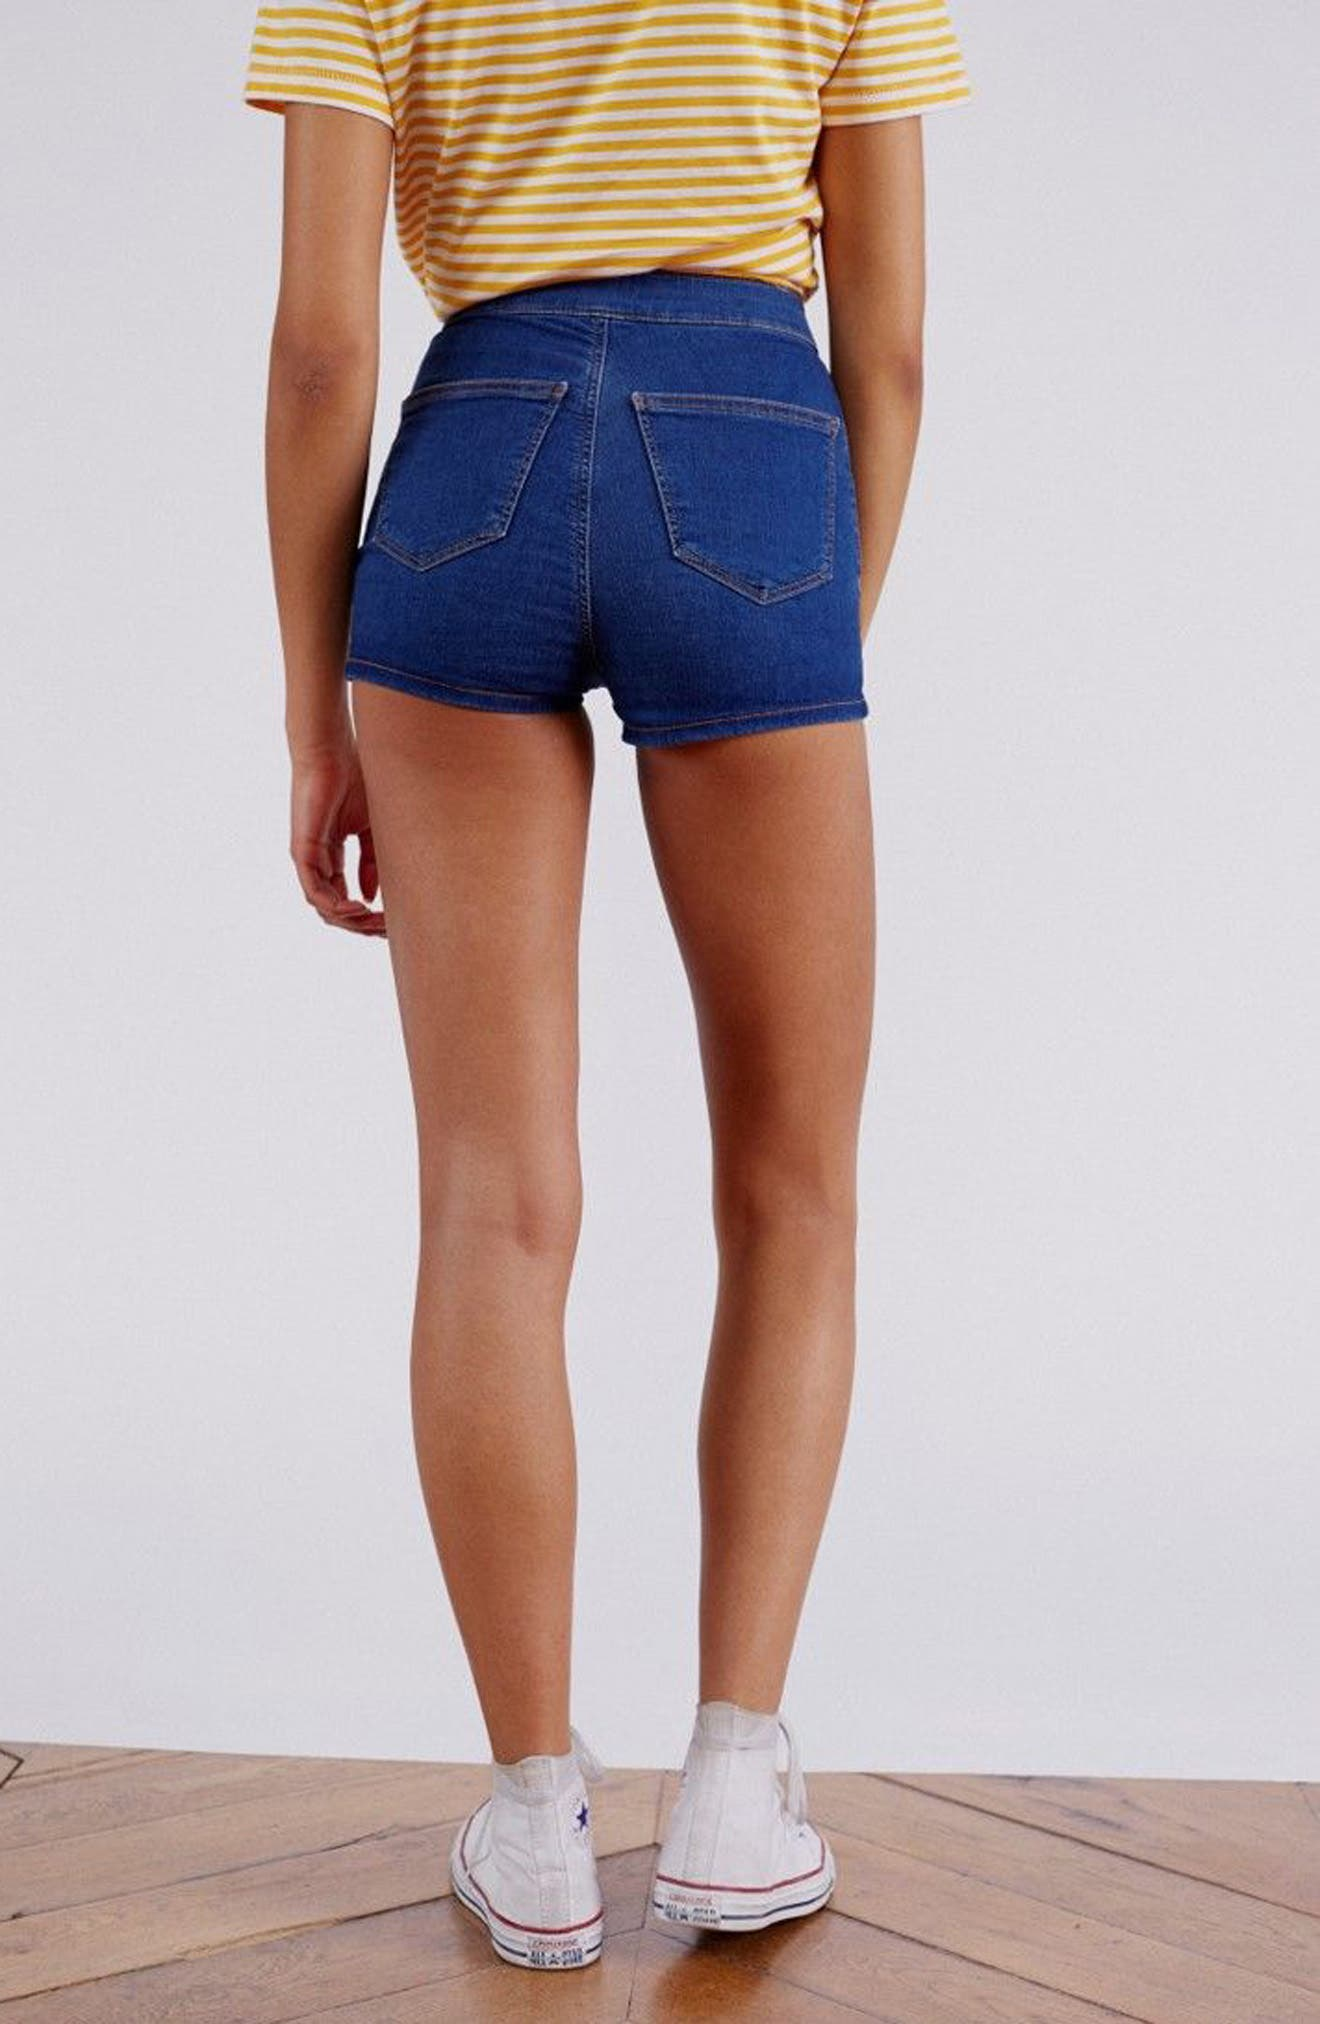 MOTO Joni Mid Denim Shorts,                             Alternate thumbnail 2, color,                             Mid Denim